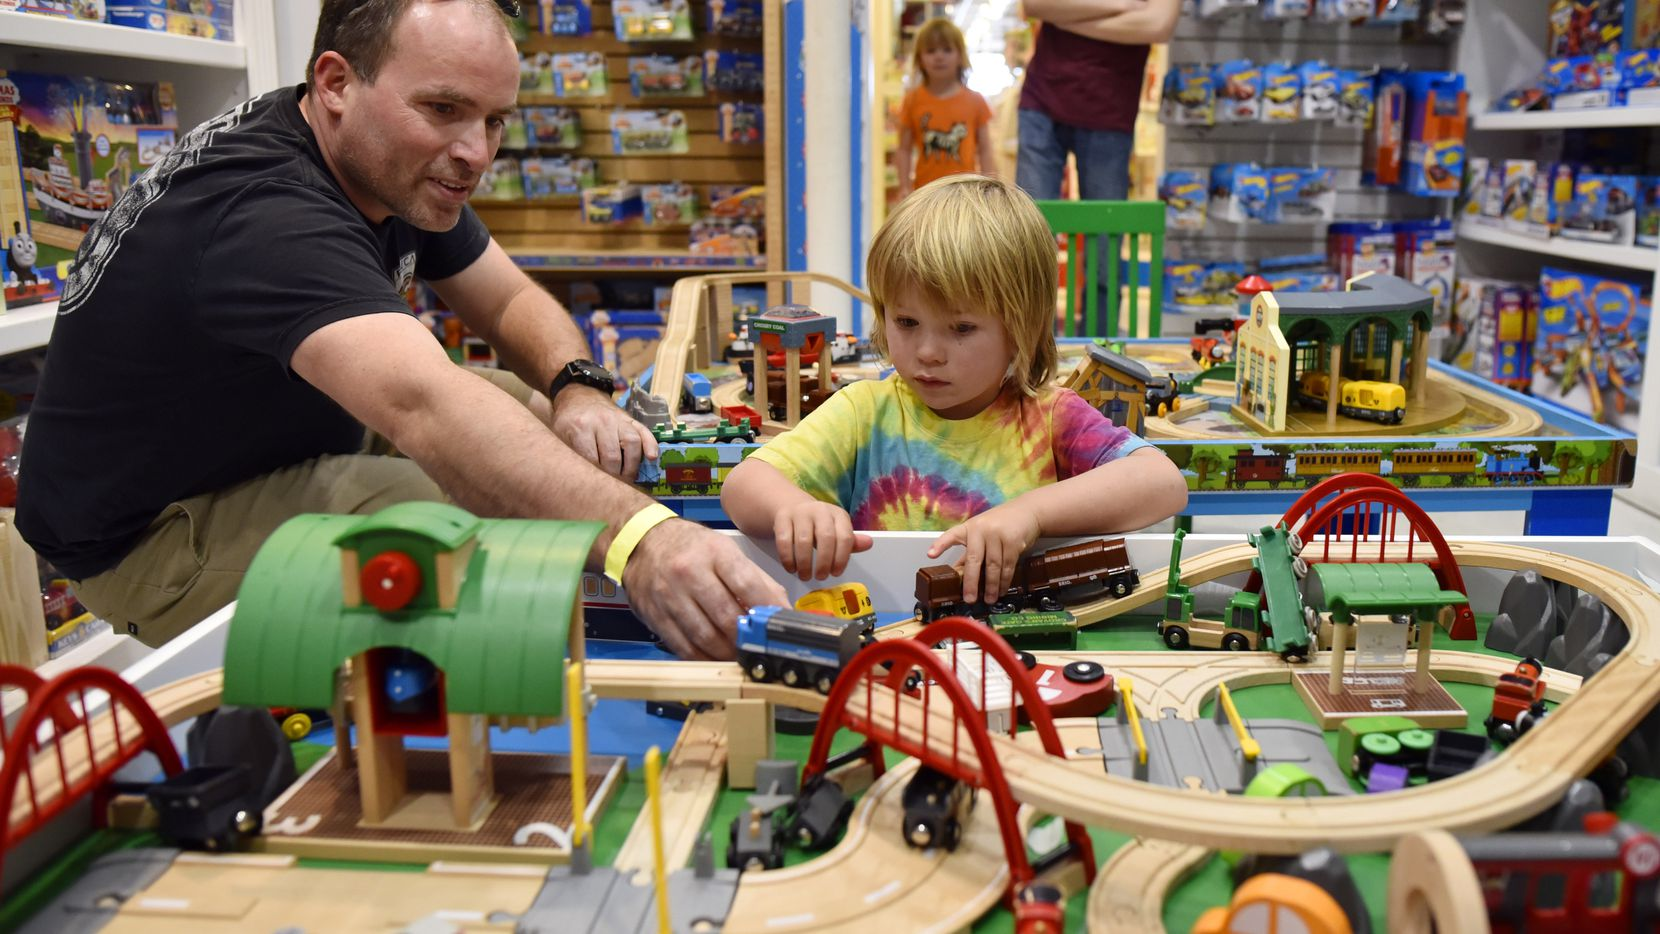 Ned Frost, 43, and son Julian Frost, 4, play with a train set while shopping inside The Toy Maven store at the Preston Royal Shopping Center in Dallas, Friday afternoon, March 16, 2018.